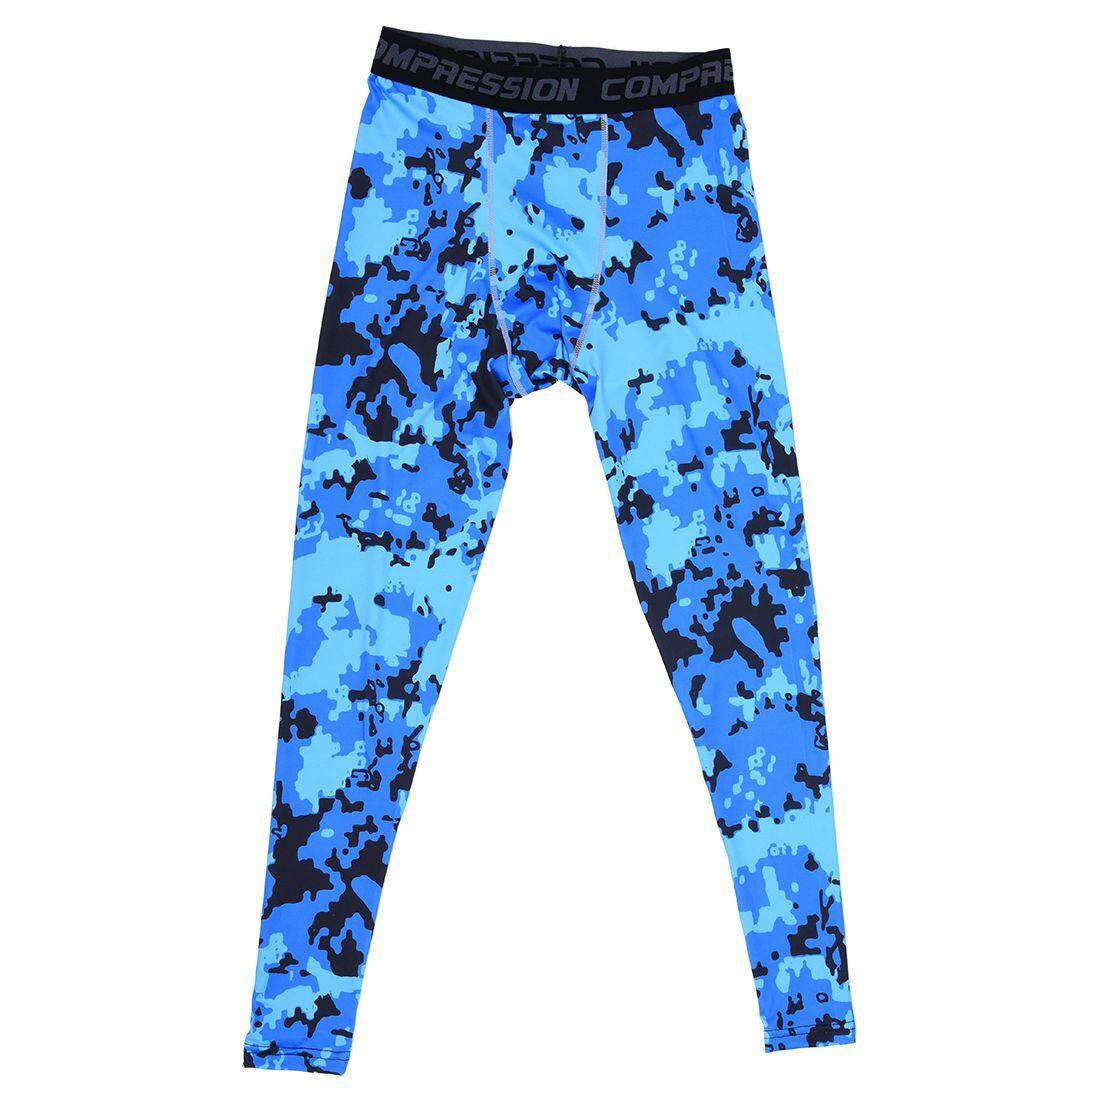 d34ed90d5c9 Men Compression Long Pants Running Base Layers Skins Tights Army Camouflage  Soccer Joggers Trousers(Blue